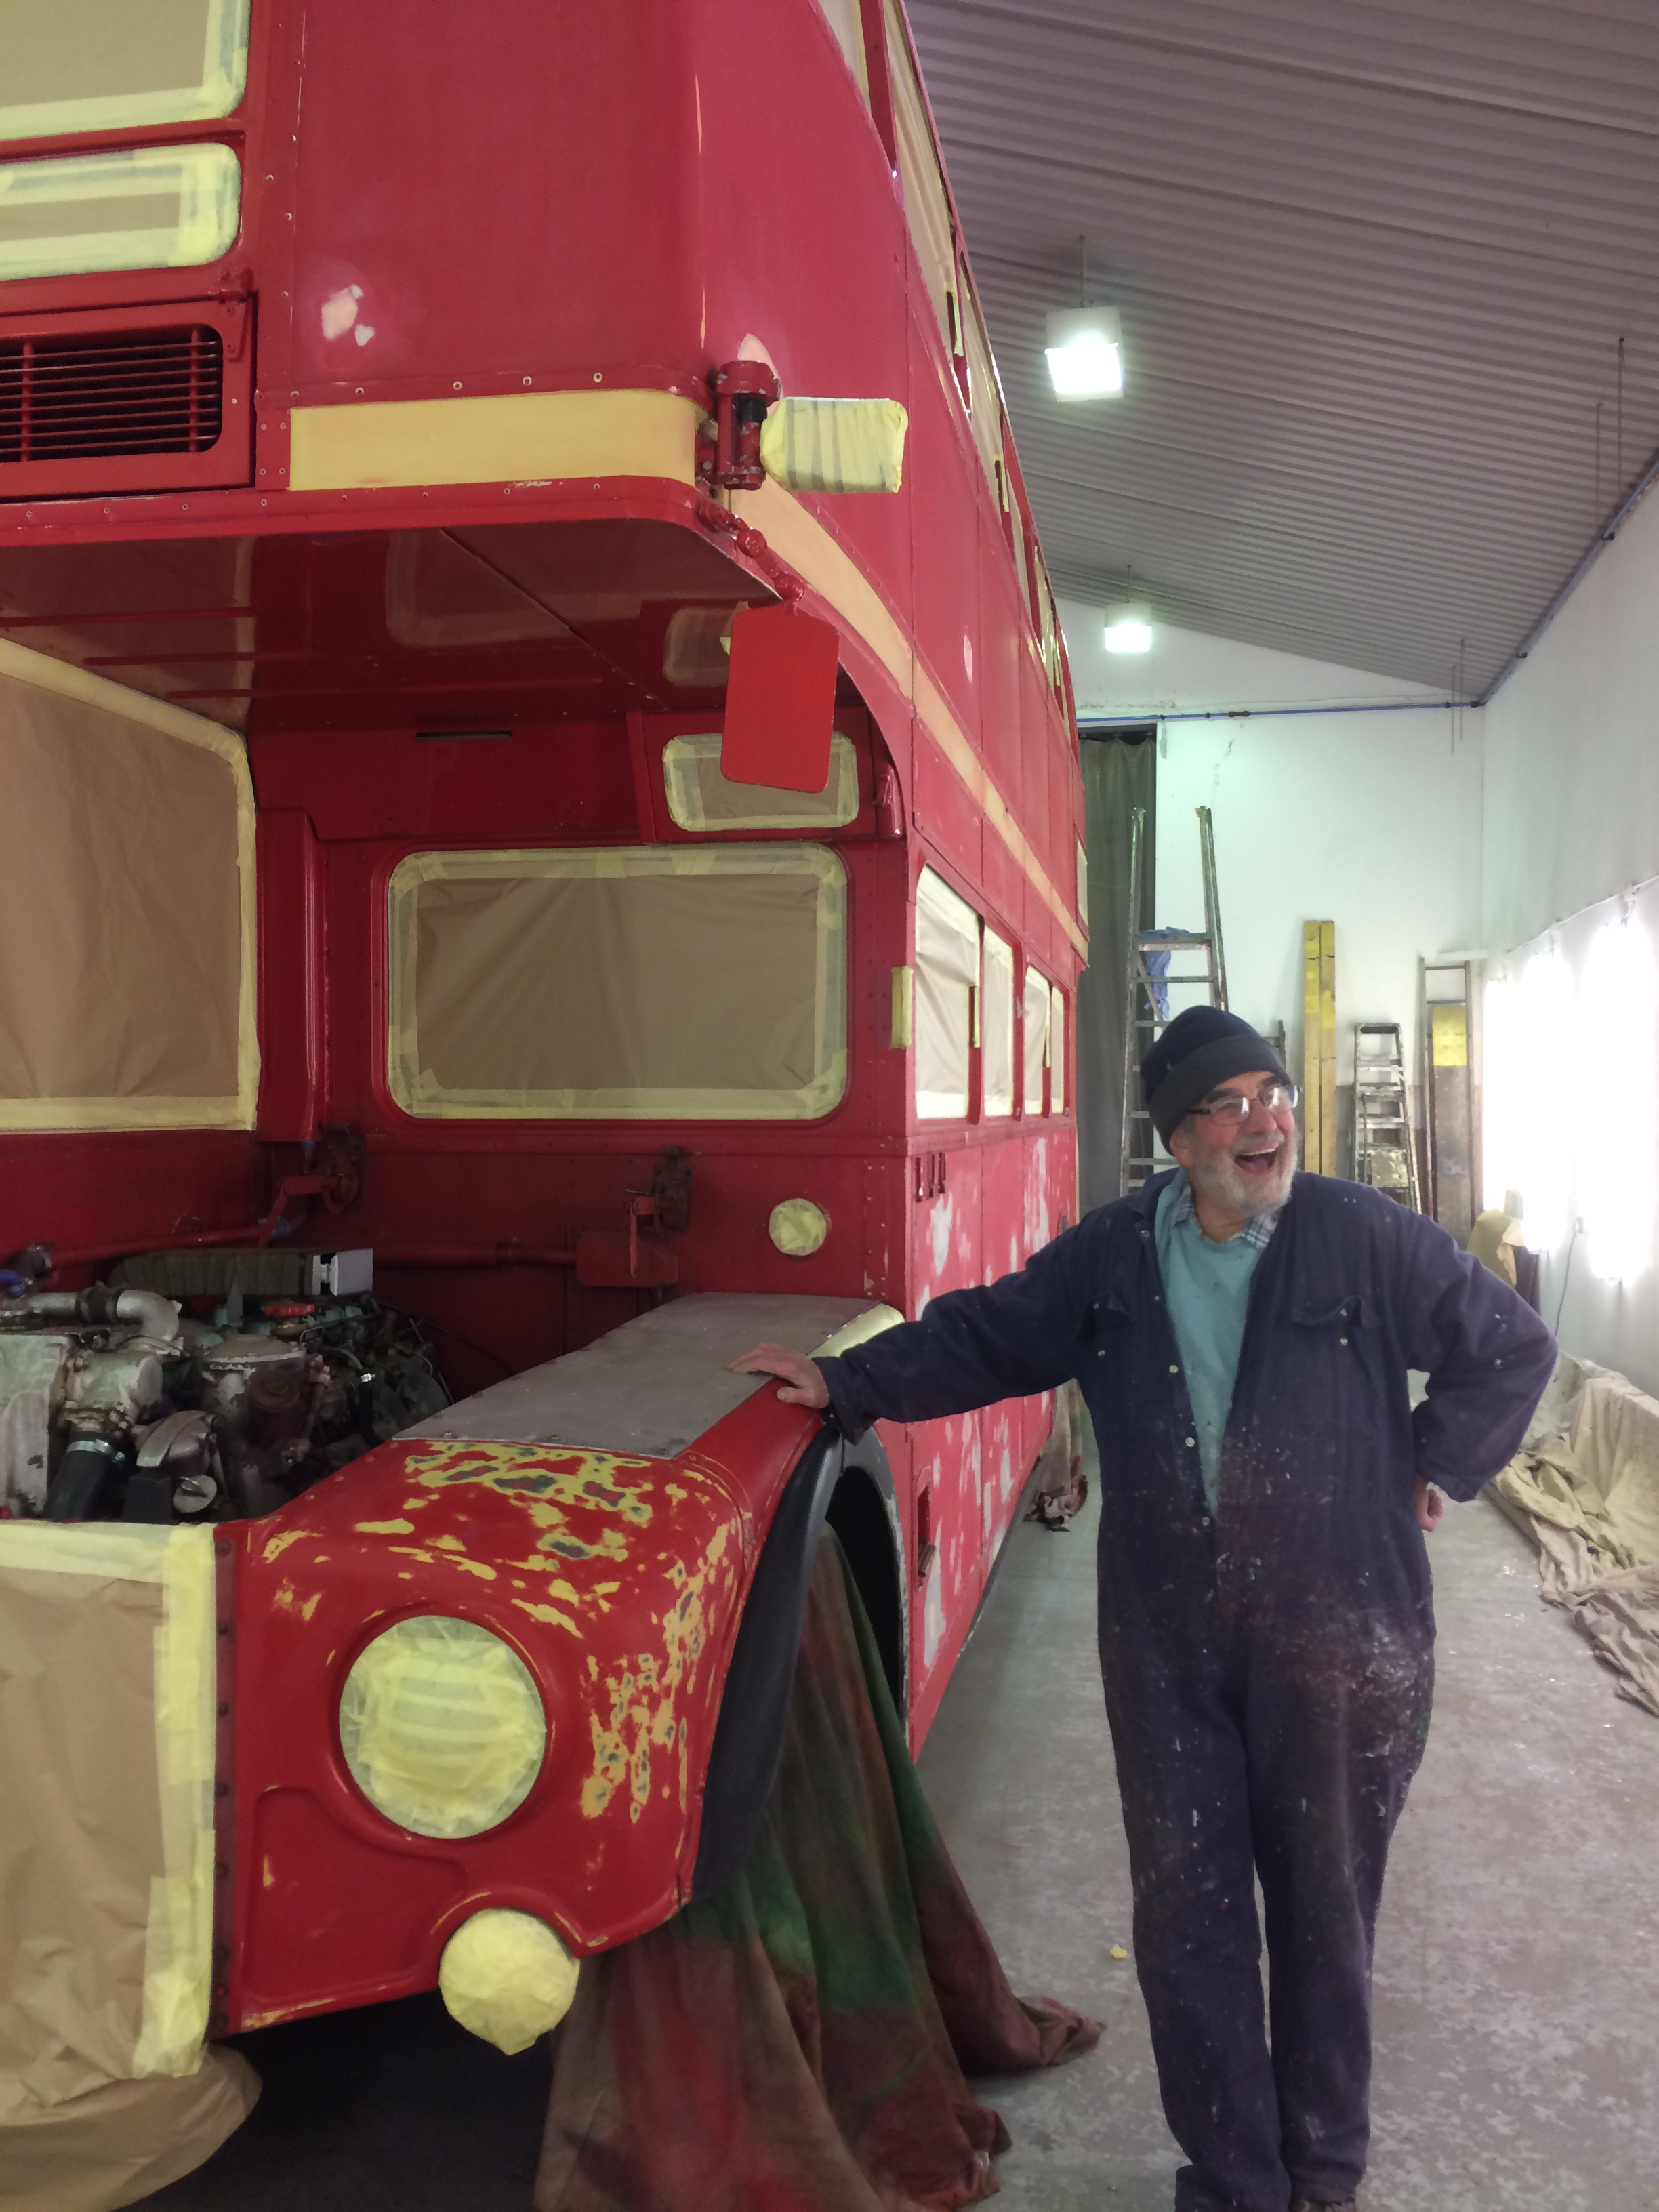 The Red Bus/Peter